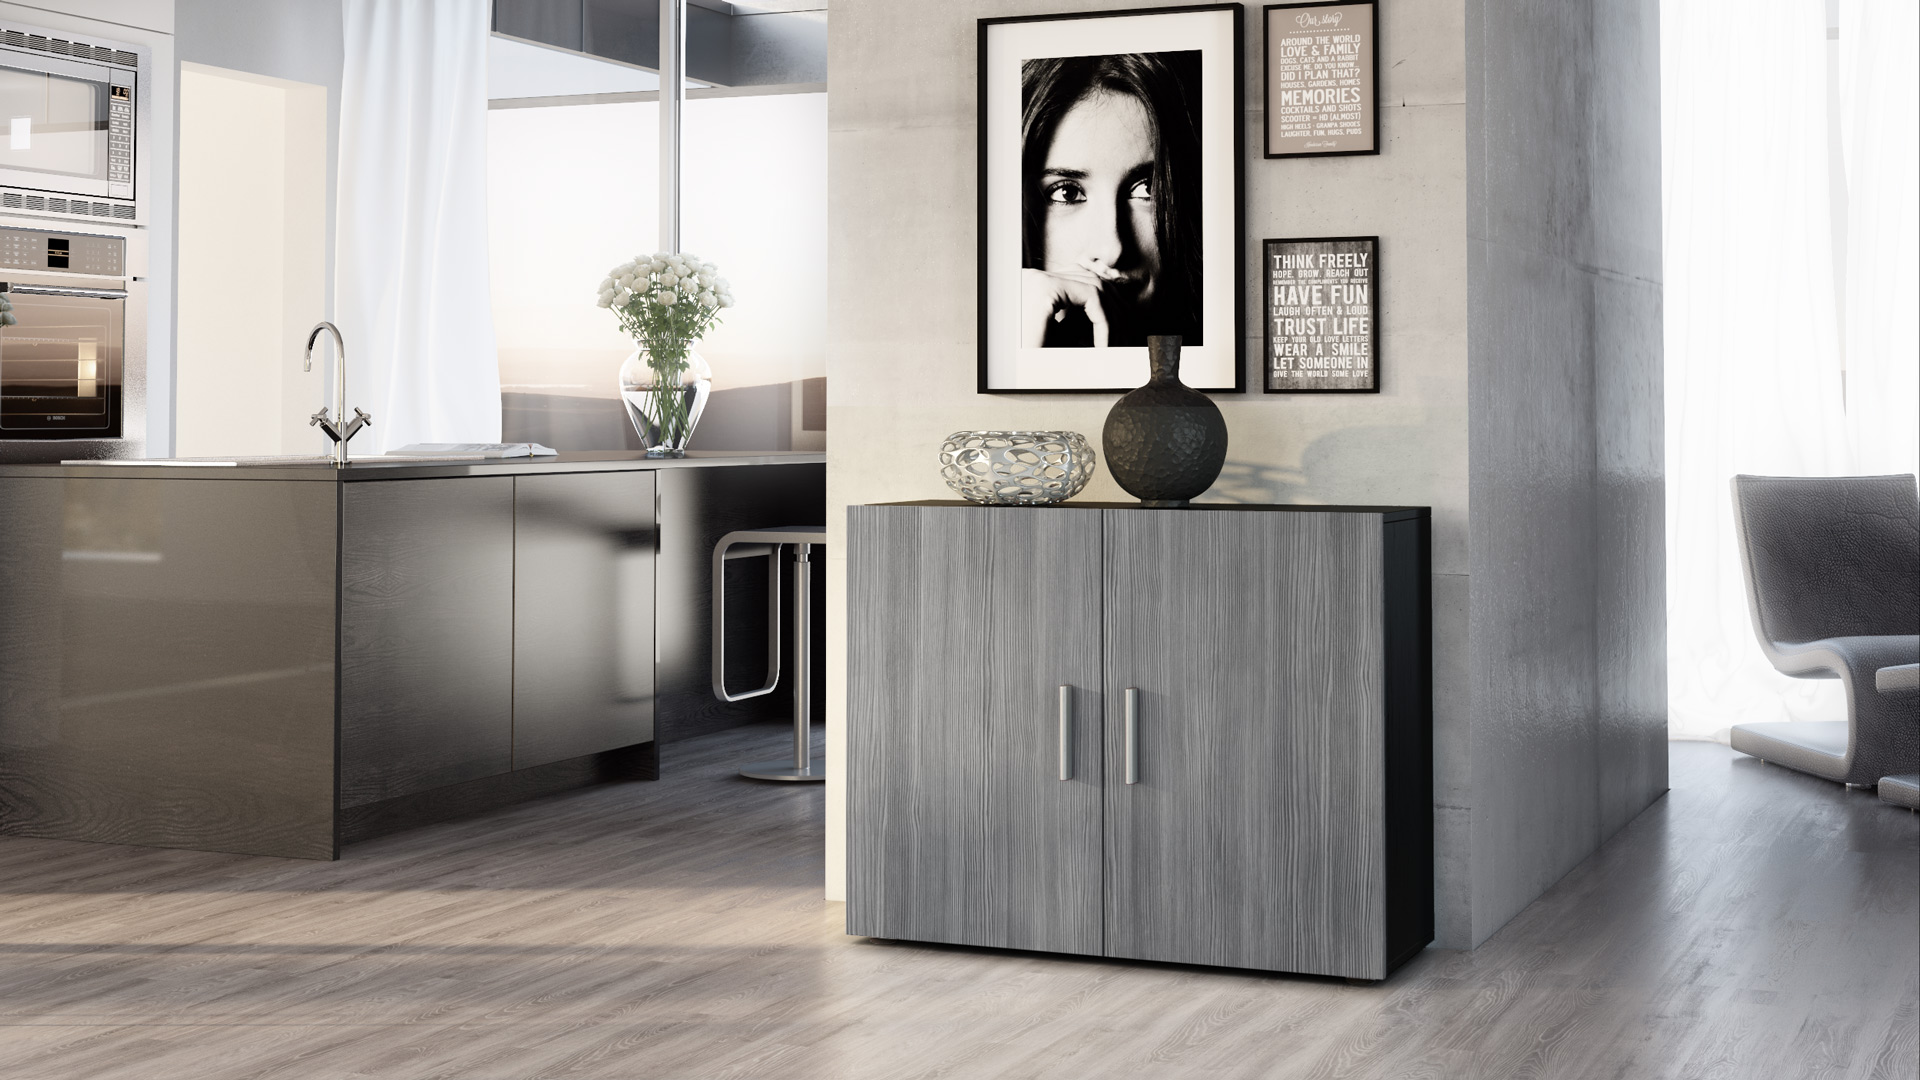 kommode schrank anrichte sideboard vega in schwarz hochglanz naturt ne ebay. Black Bedroom Furniture Sets. Home Design Ideas